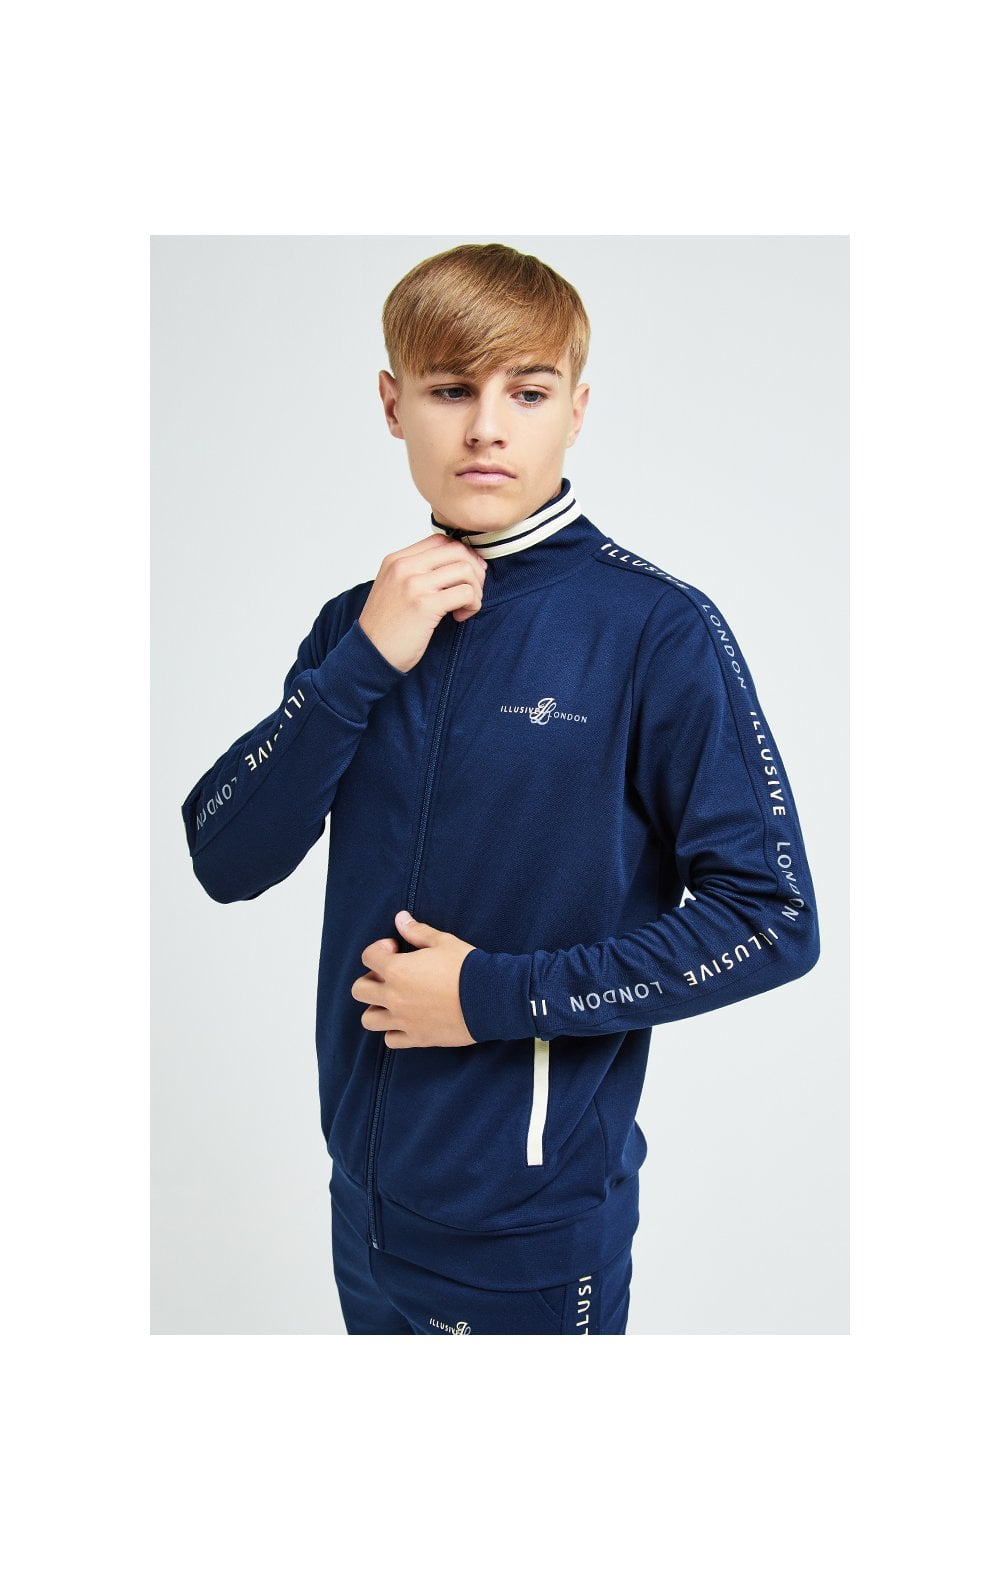 Illusive London Legacy Track Top - Navy & Cream